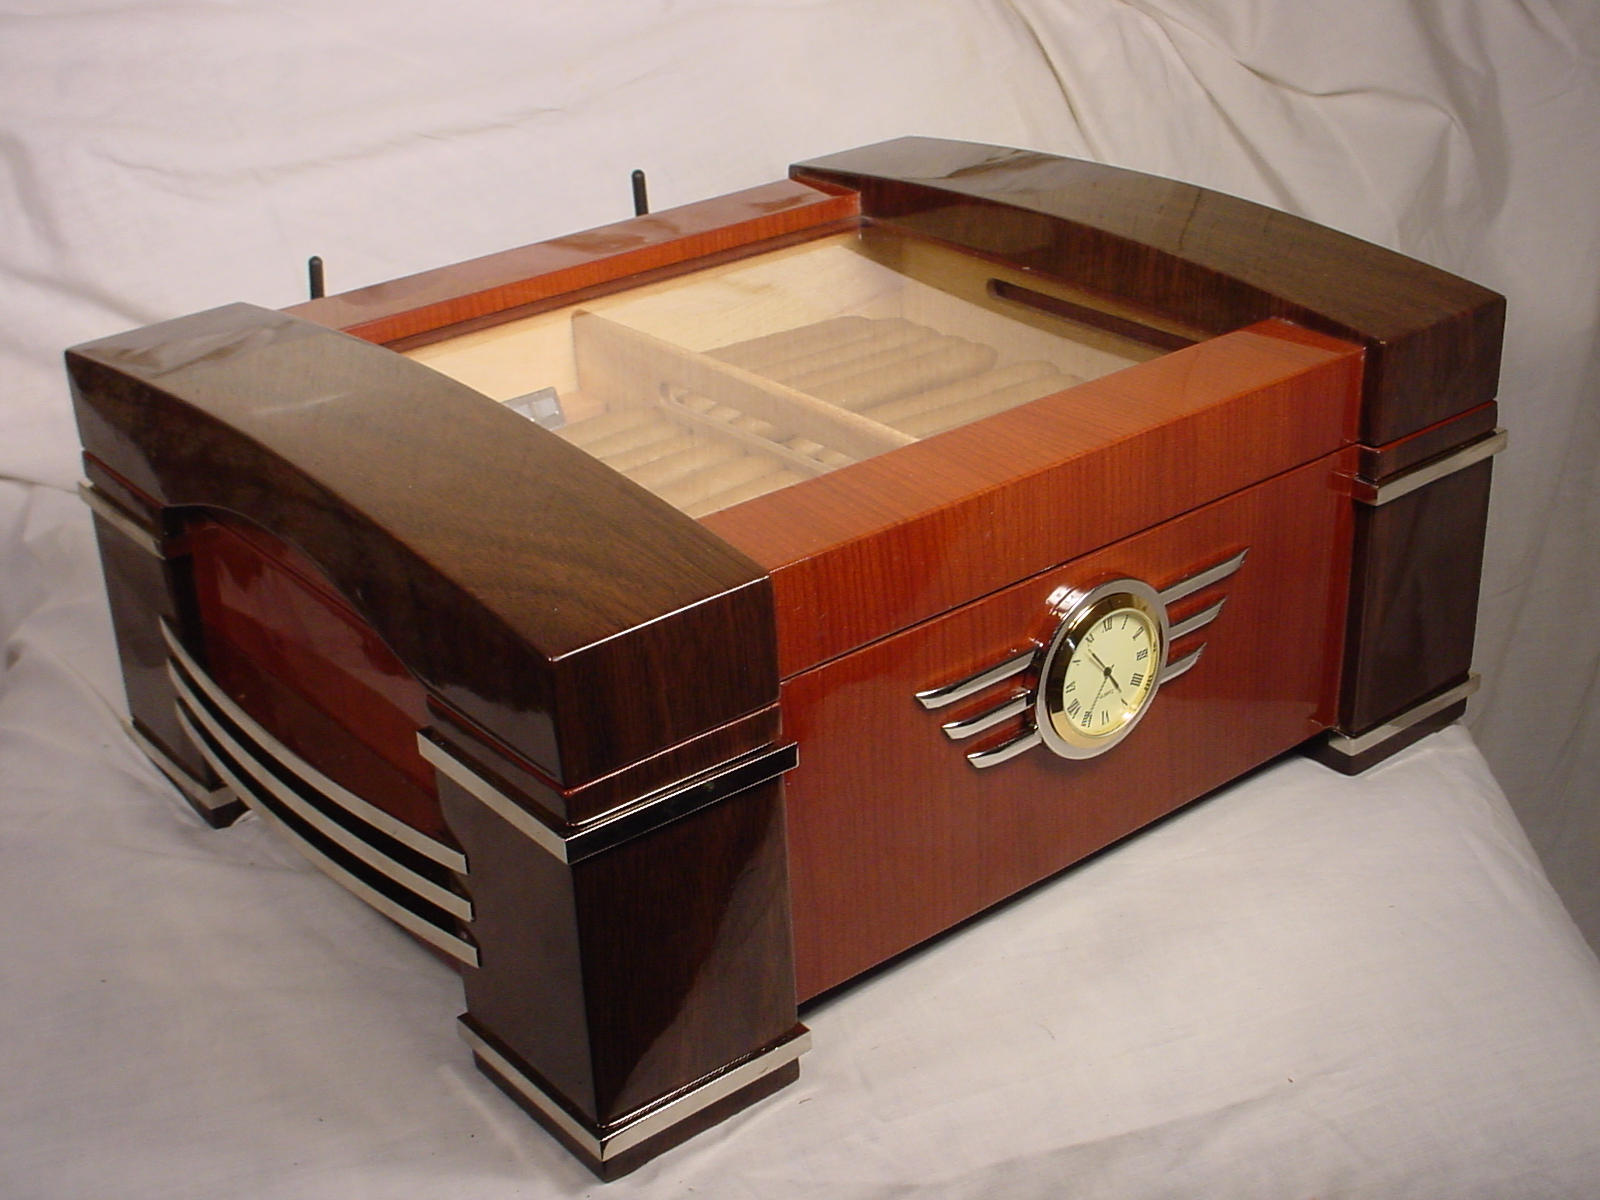 File:Humidor CL Server.jpg - Wikimedia Commons